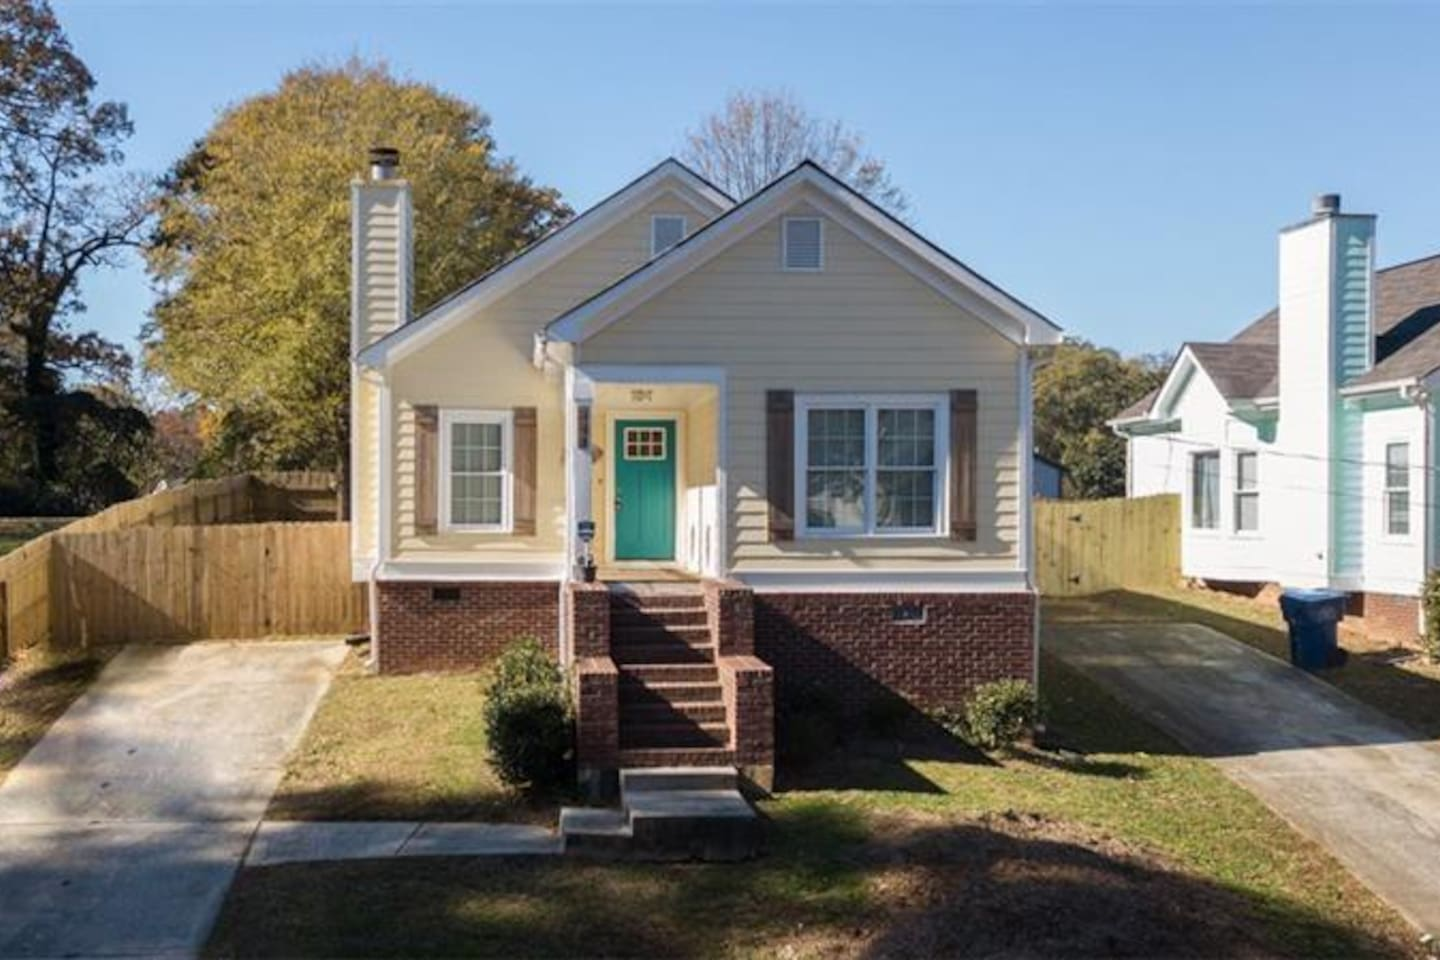 Beautiful 3BR 2BTH Bungalow recently renovated in 2018.